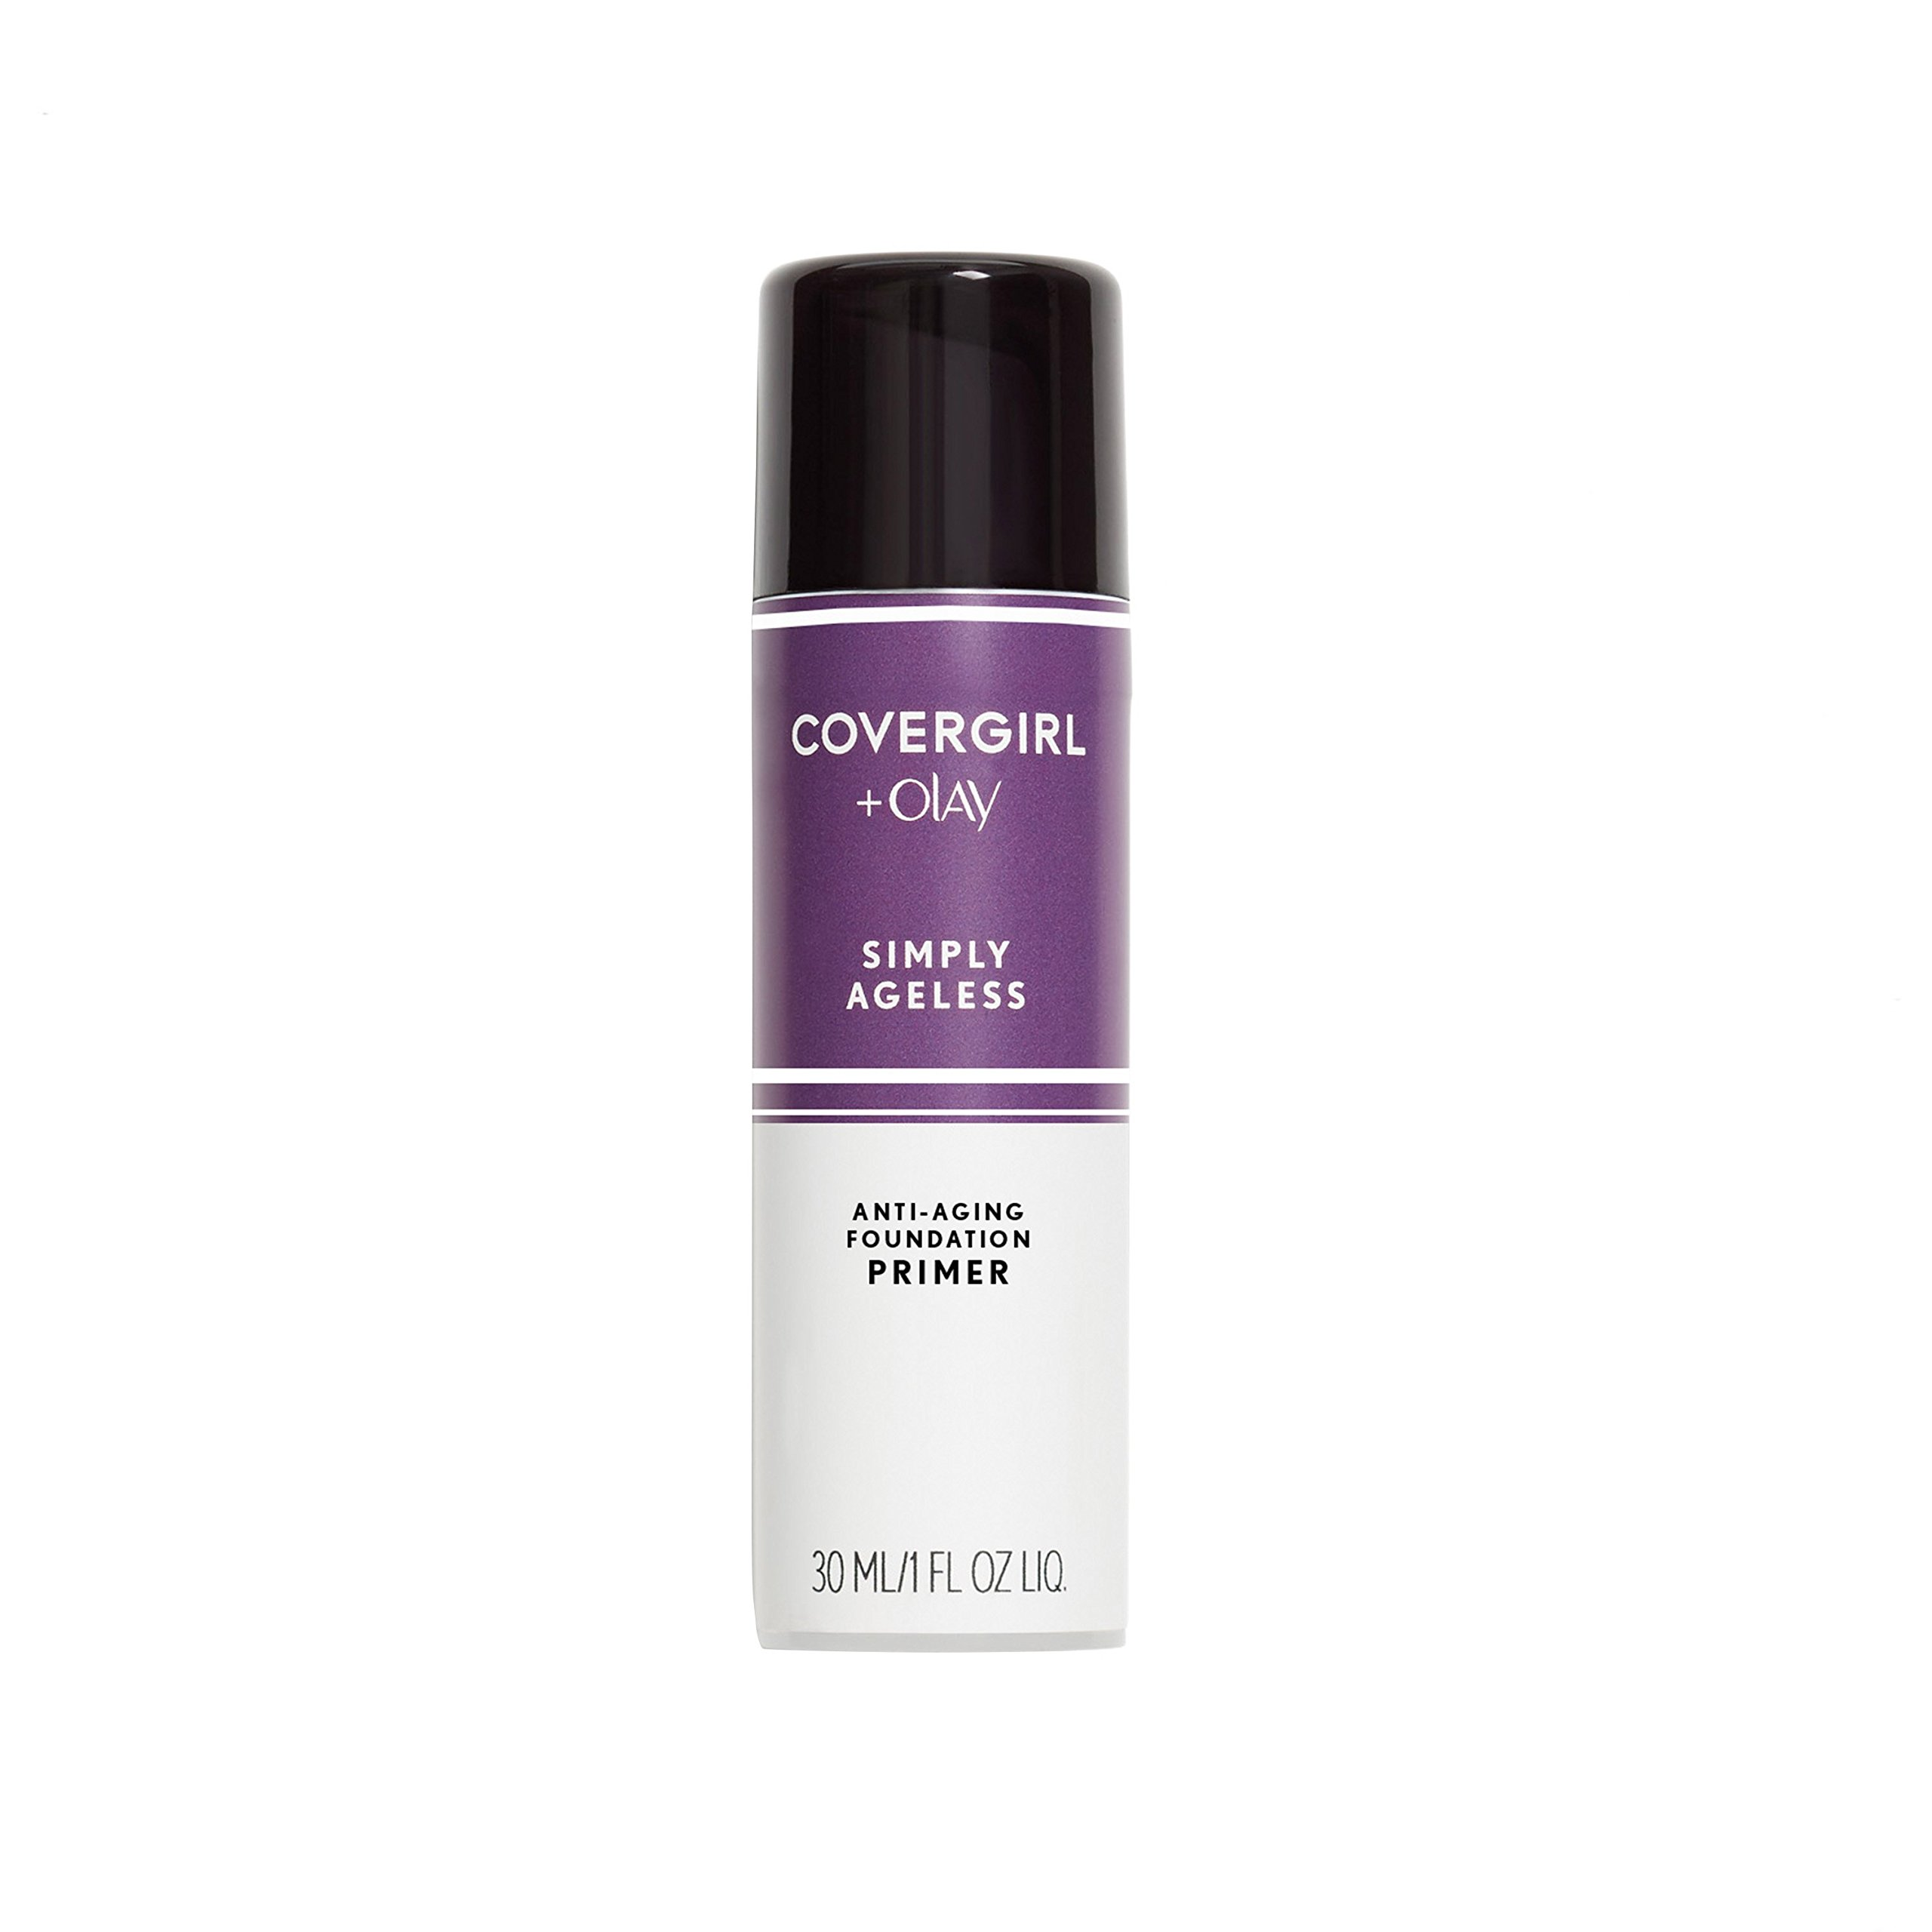 COVERGIRL + Olay Simply Ageless Makeup Oil Free Serum Primer for an Age-Defying, Never Pore Clogging Start to Your Makeup Routine, 1 ounce. (packaging may vary)